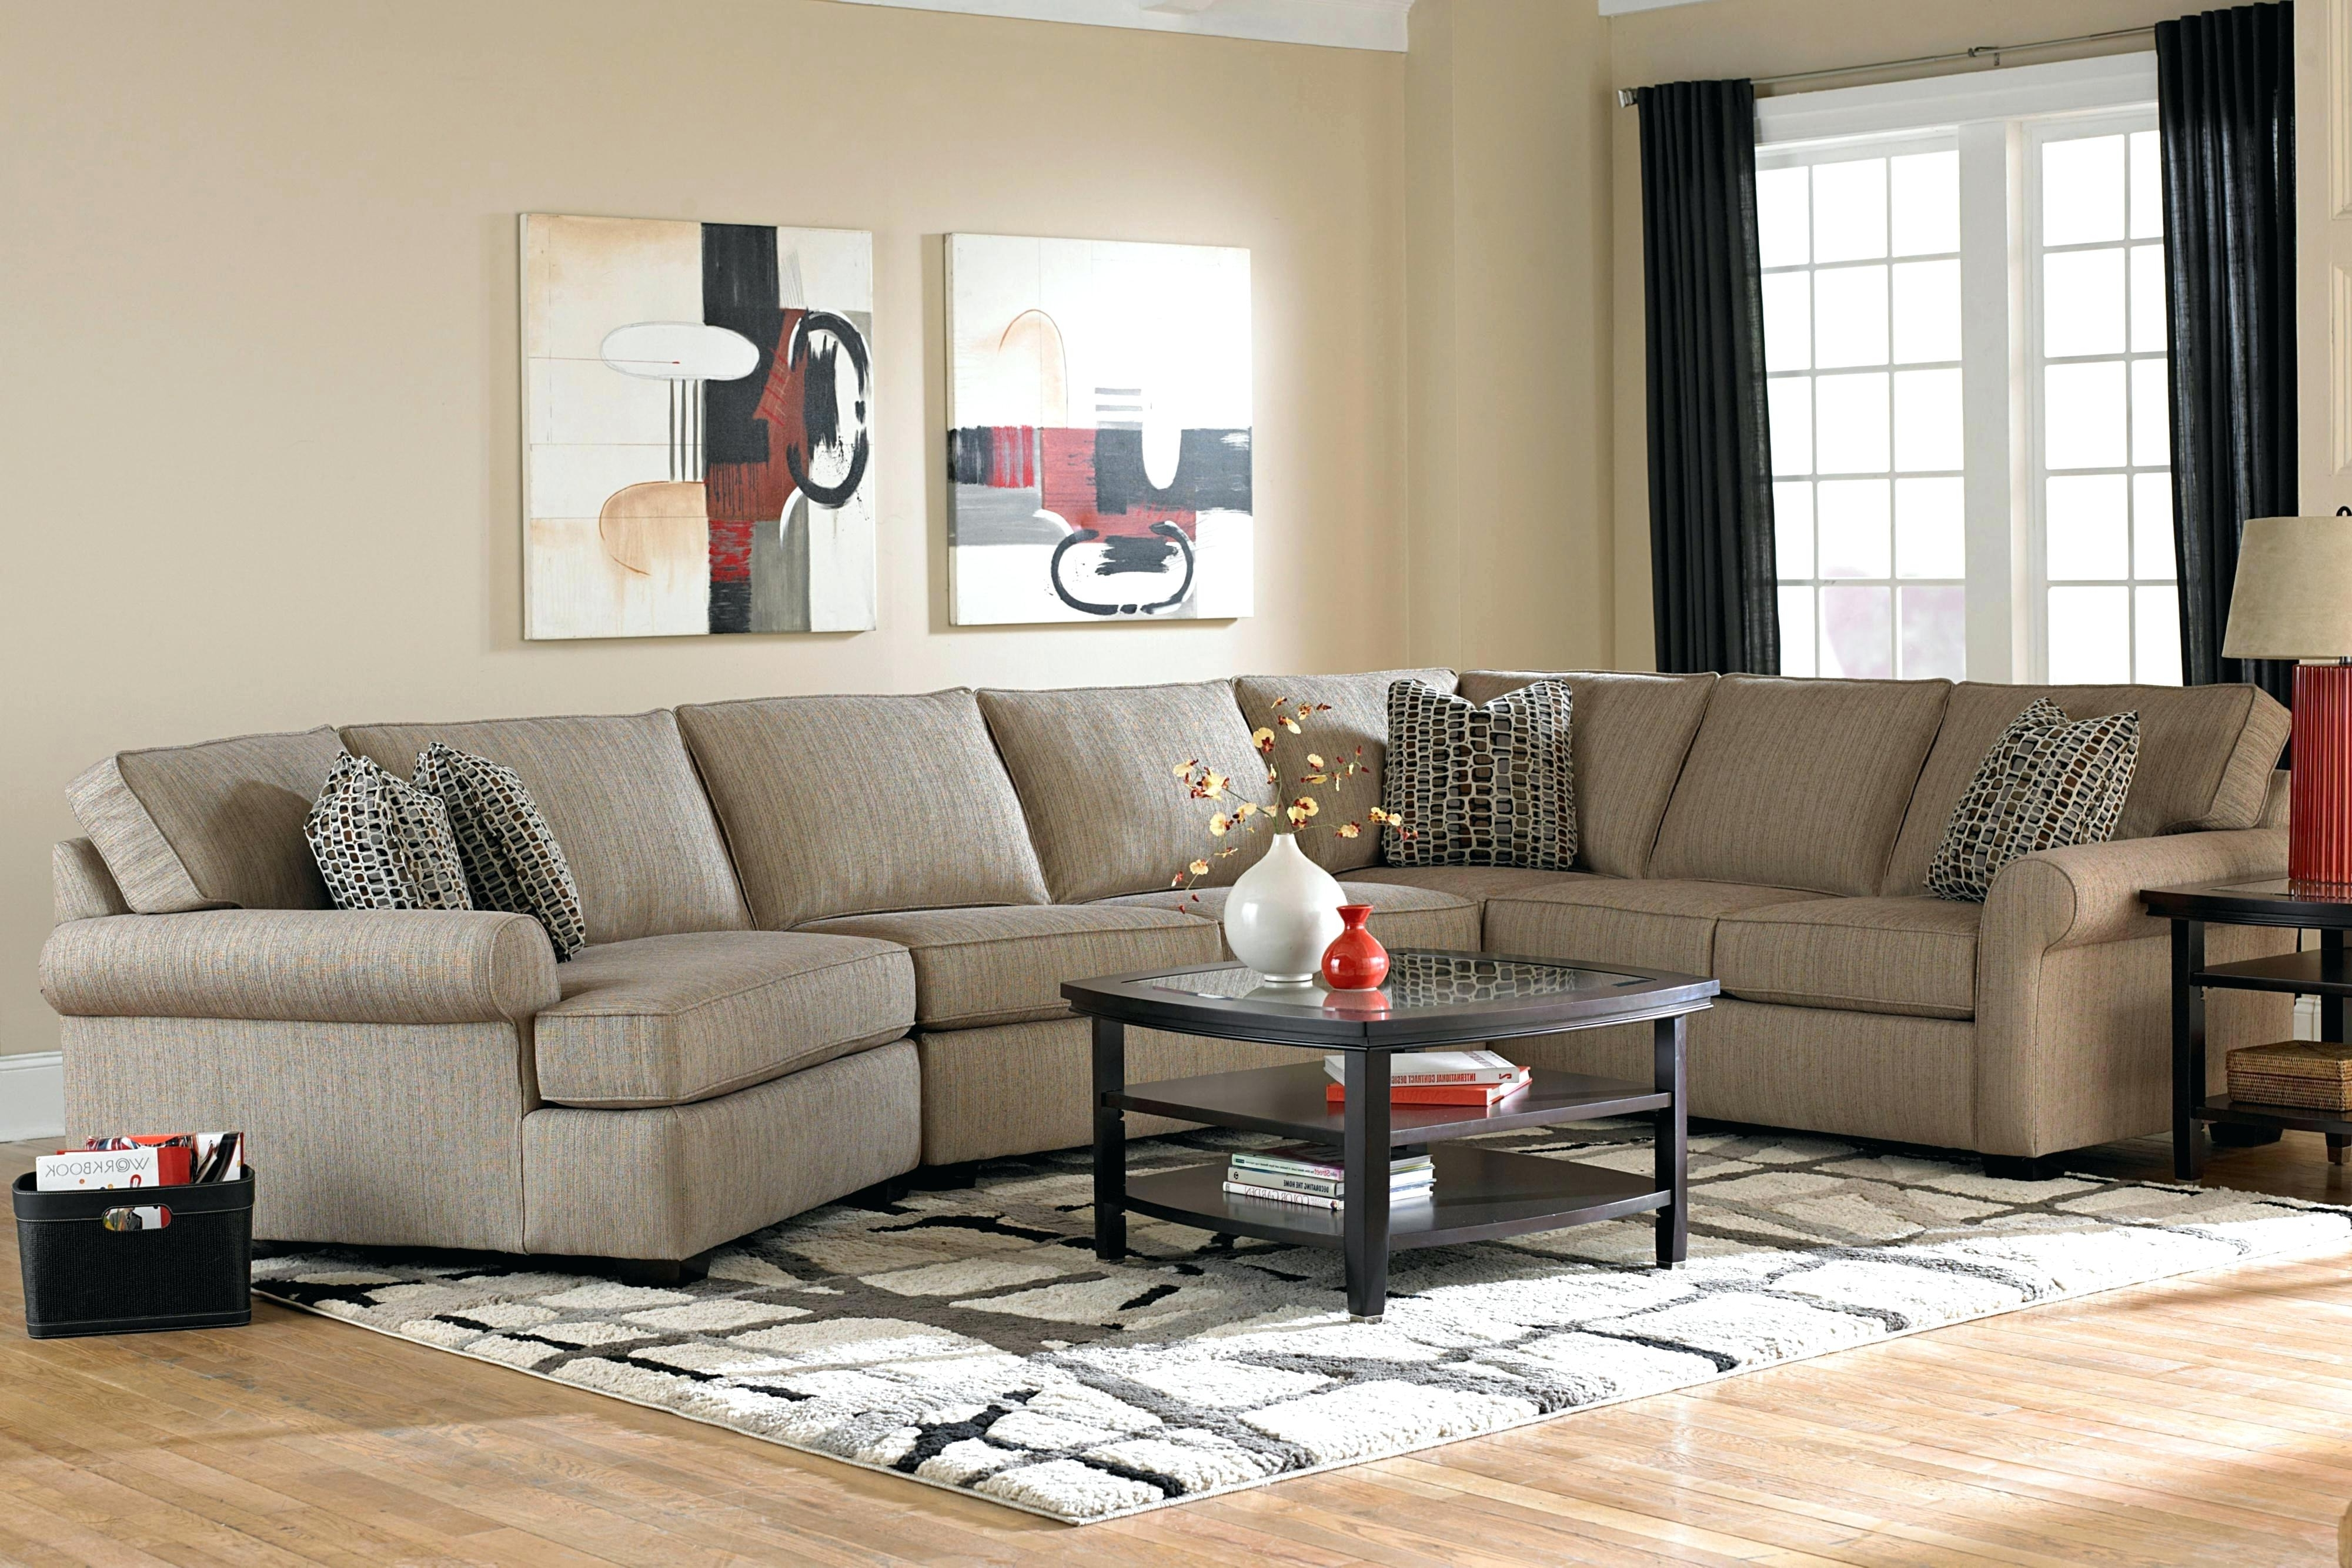 Well Known Broyhill Furniture Sale 3 Sofa With All Around Wood Base – 4Parkar Intended For Broyhill Sectional Sofas (View 8 of 15)